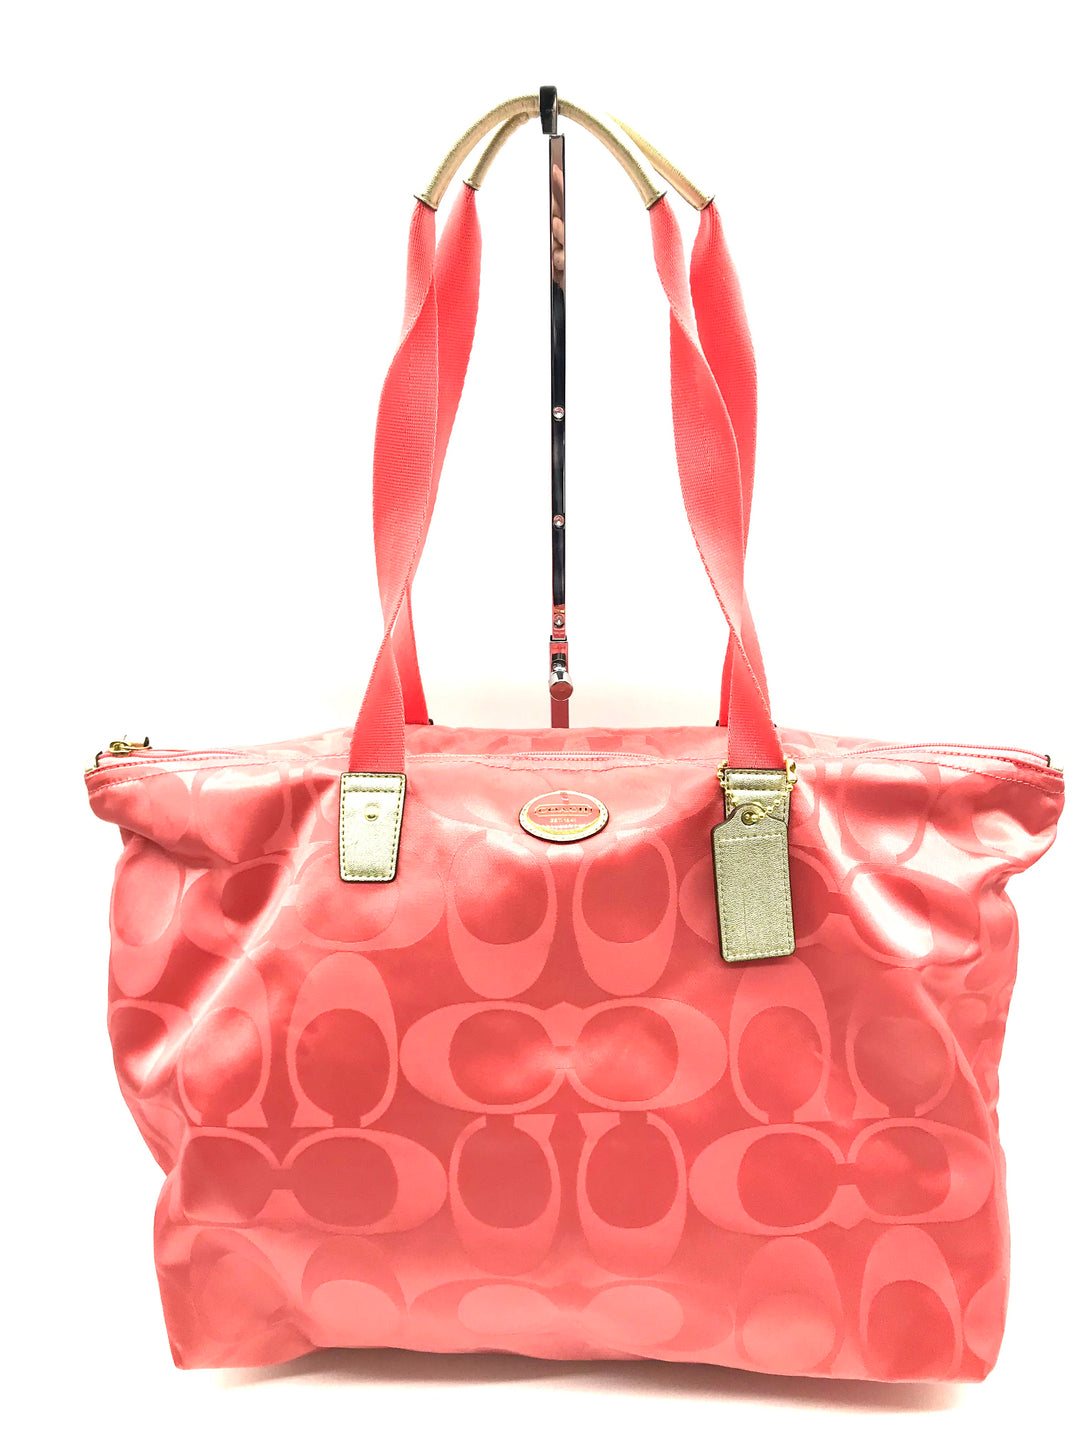 "Primary Photo - BRAND: COACH <BR>STYLE: HANDBAG DESIGNER <BR>COLOR: PEACH <BR>SIZE: LARGE <BR>SKU: 262-26211-131031<BR><BR>APPROX. 17.75""L X 11""H X 7""D. INCLUDES DETACHABLE INTERIOR POUCH APPROX. 10""L X 7.25""H. GENTLE WEAR ON BACK"